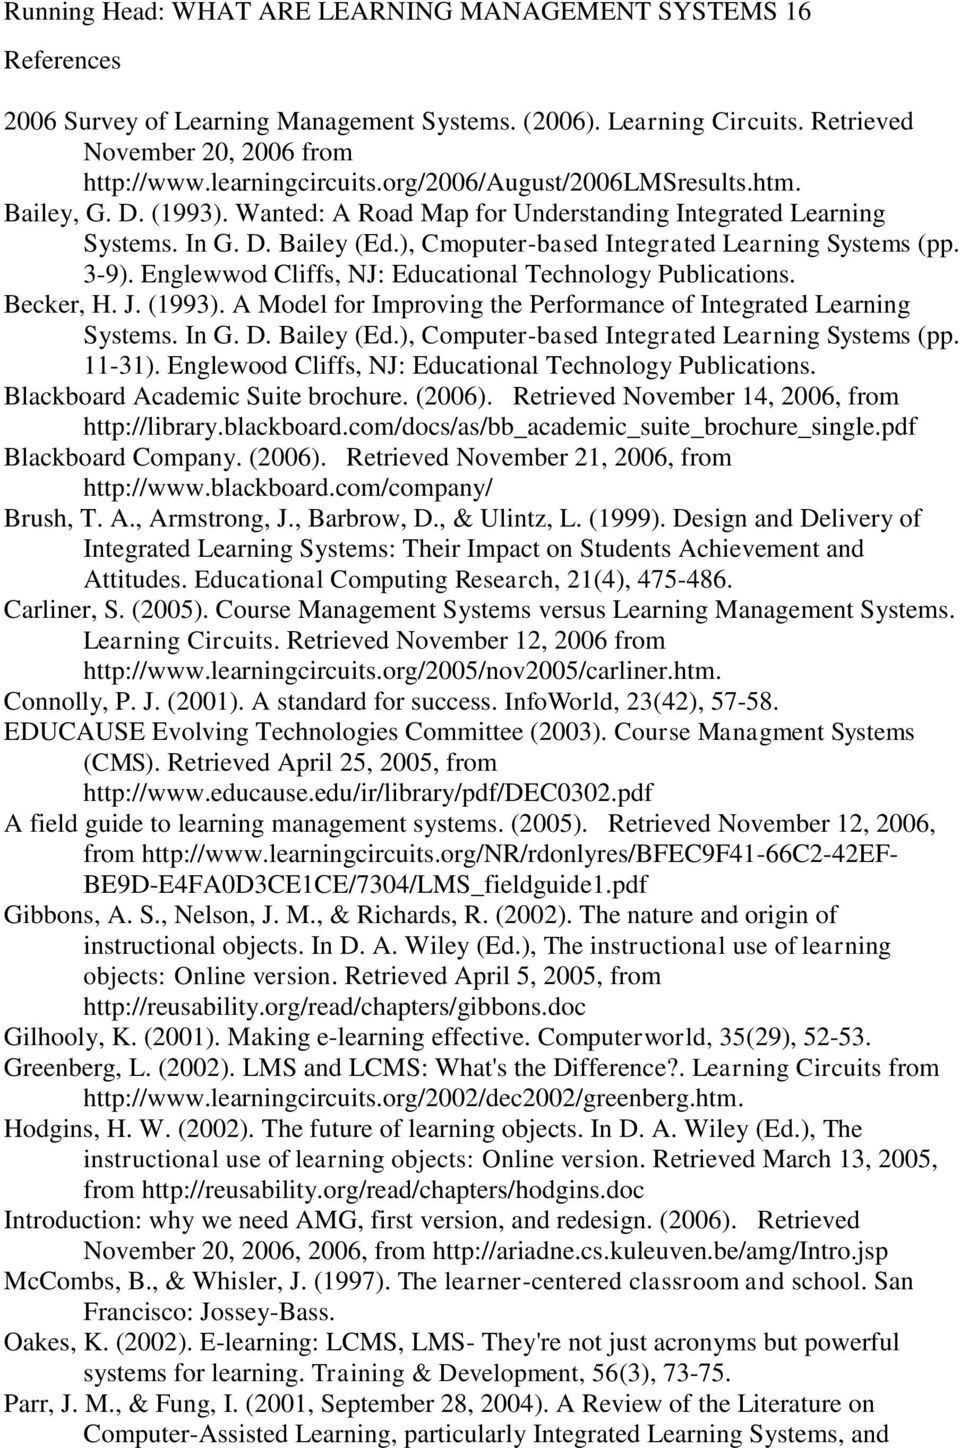 Englewwod Cliffs, NJ: Educational Technology Publications. Becker, H. J. (1993). A Model for Improving the Performance of Integrated Learning Systems. In G. D. Bailey (Ed.